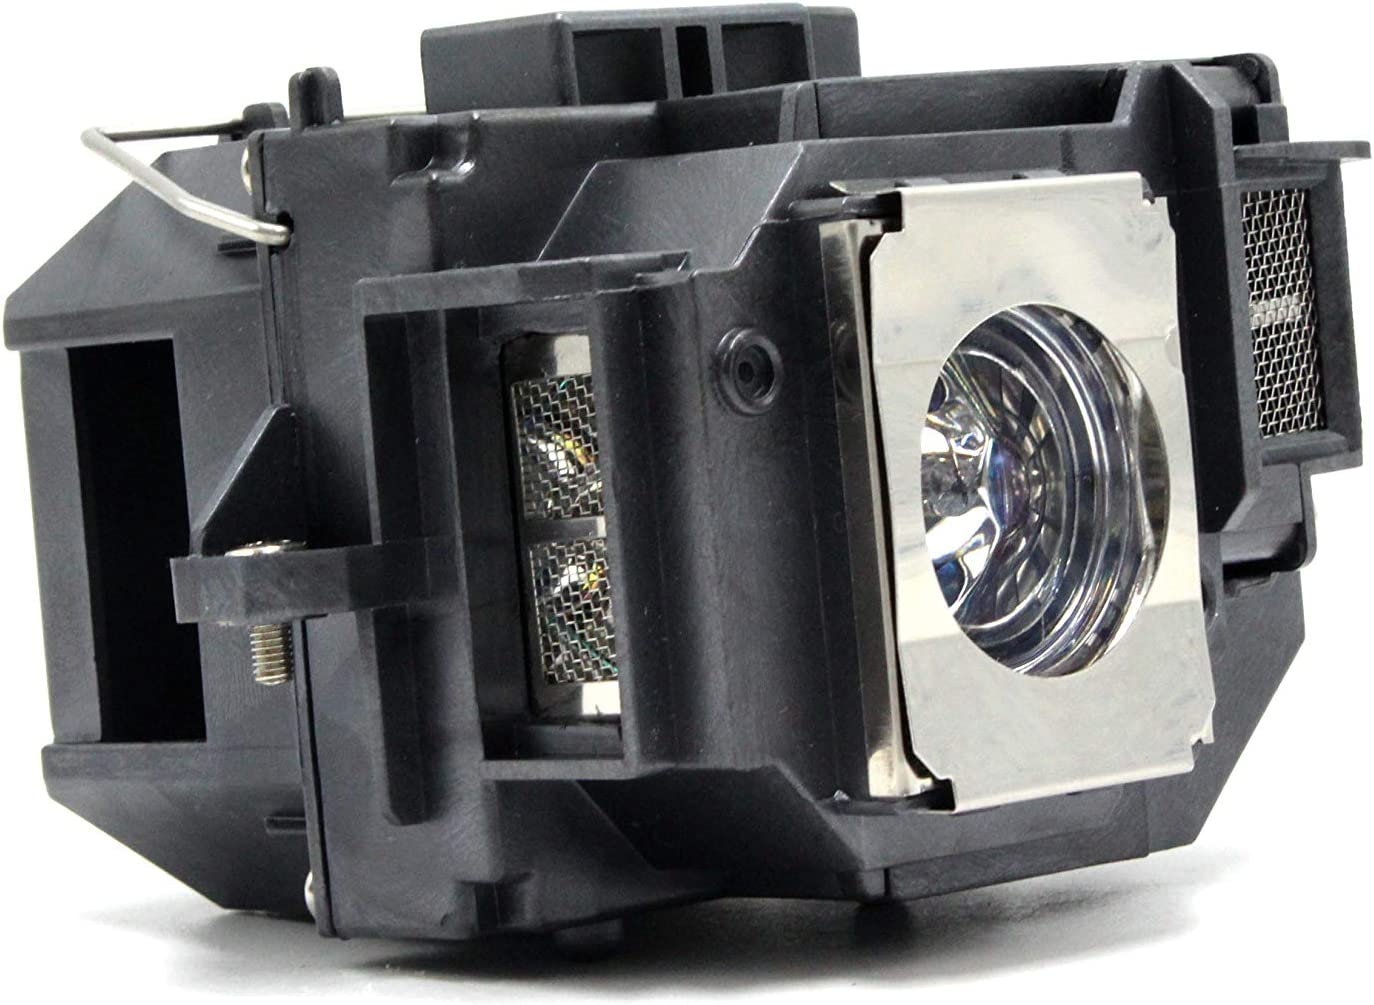 Emazne OEM ELPLP55/V13H010L55 Projector Lamp Genuine Original Bulb with Housing for Epson EB-S7 EB-S72 EB-S82 EB-W7 EB-W8 EB-W8D EB-X72 EB-X8 EB-X8e/EH-TW450/EX31 EX51 EX71/H309A H309C